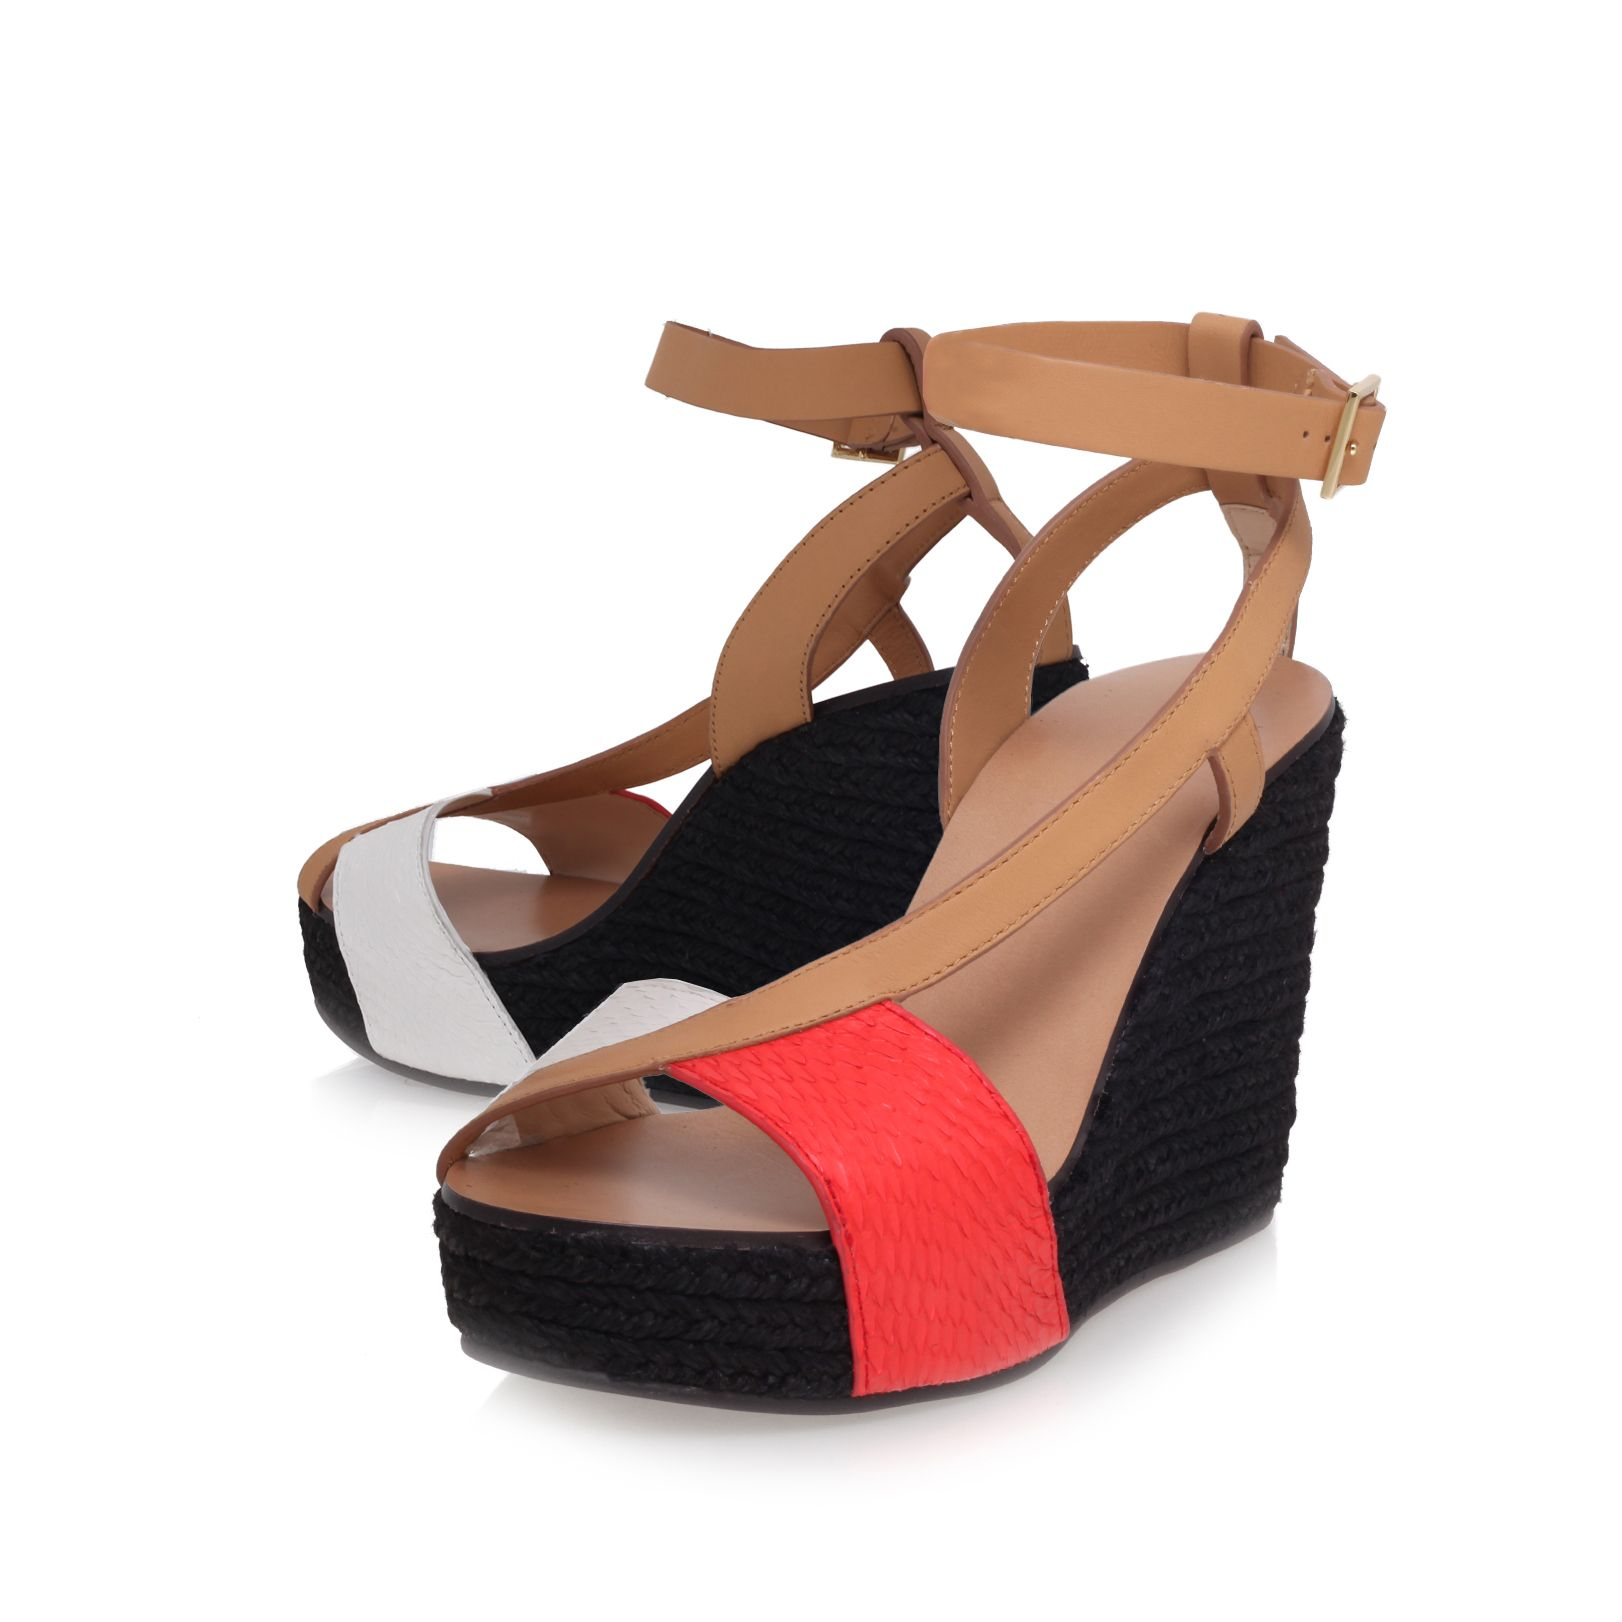 High heeled wedges